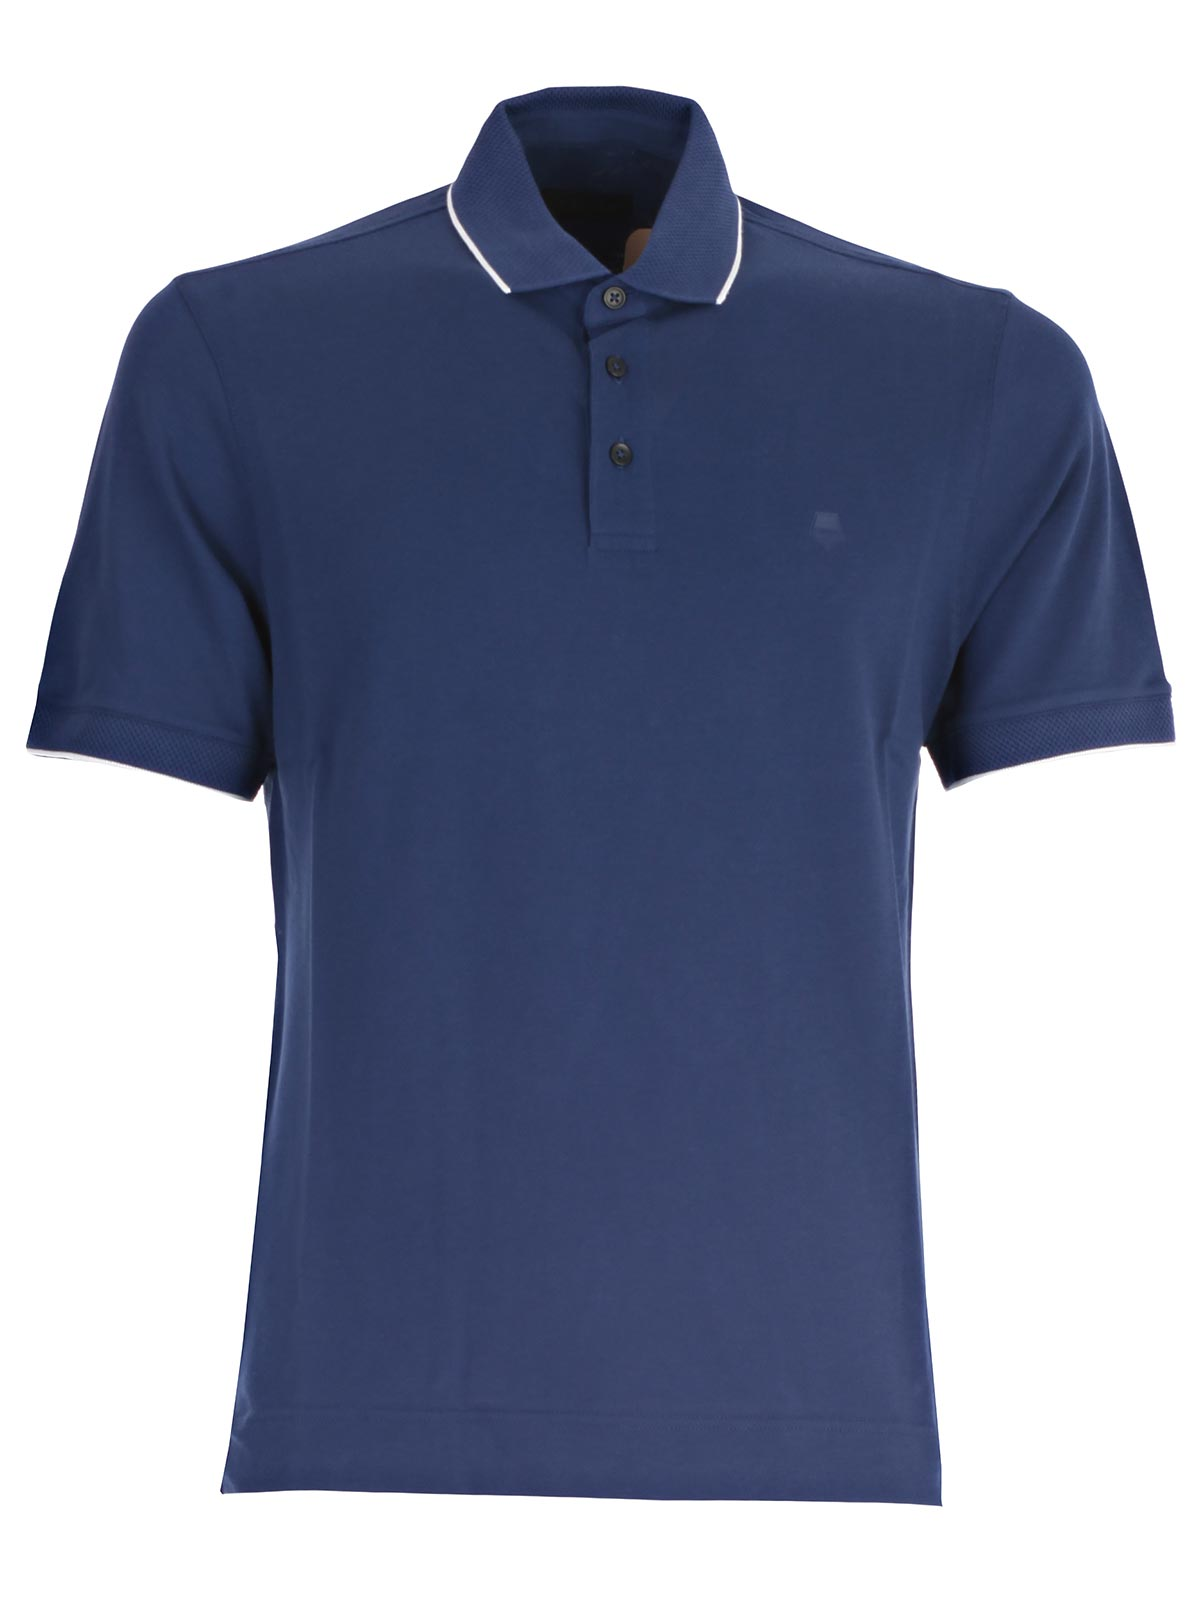 Picture of Z ZEGNA POLO